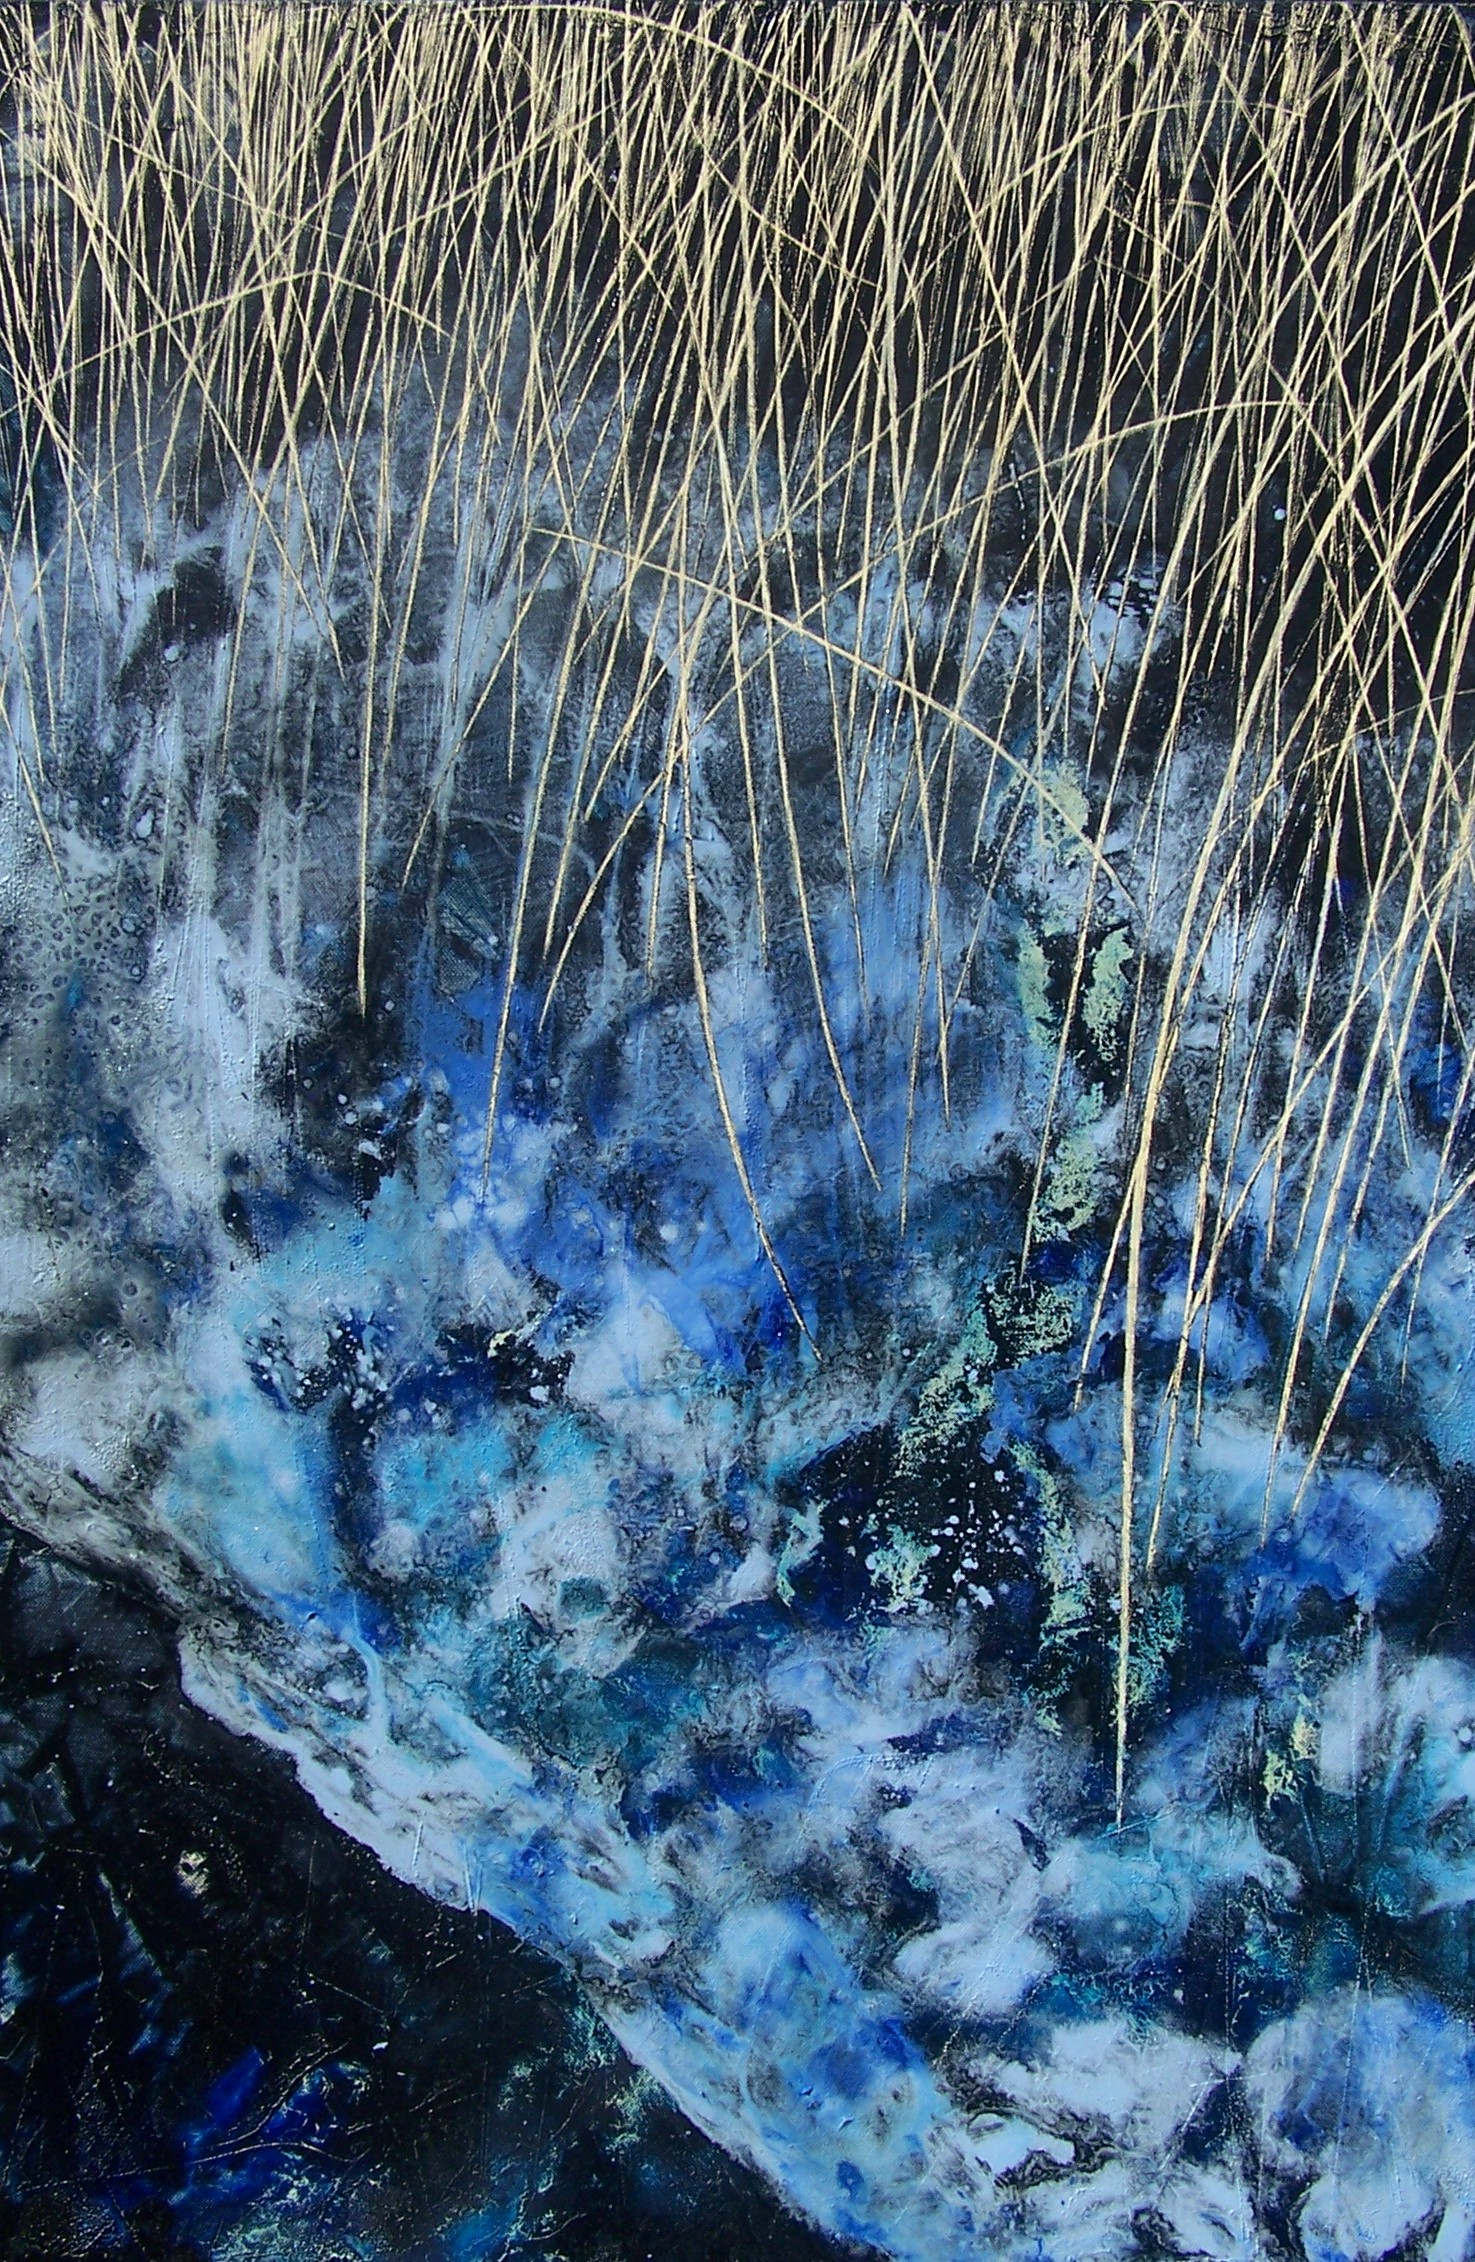 Frozen Line, Winter reeds 2, oil on canvas